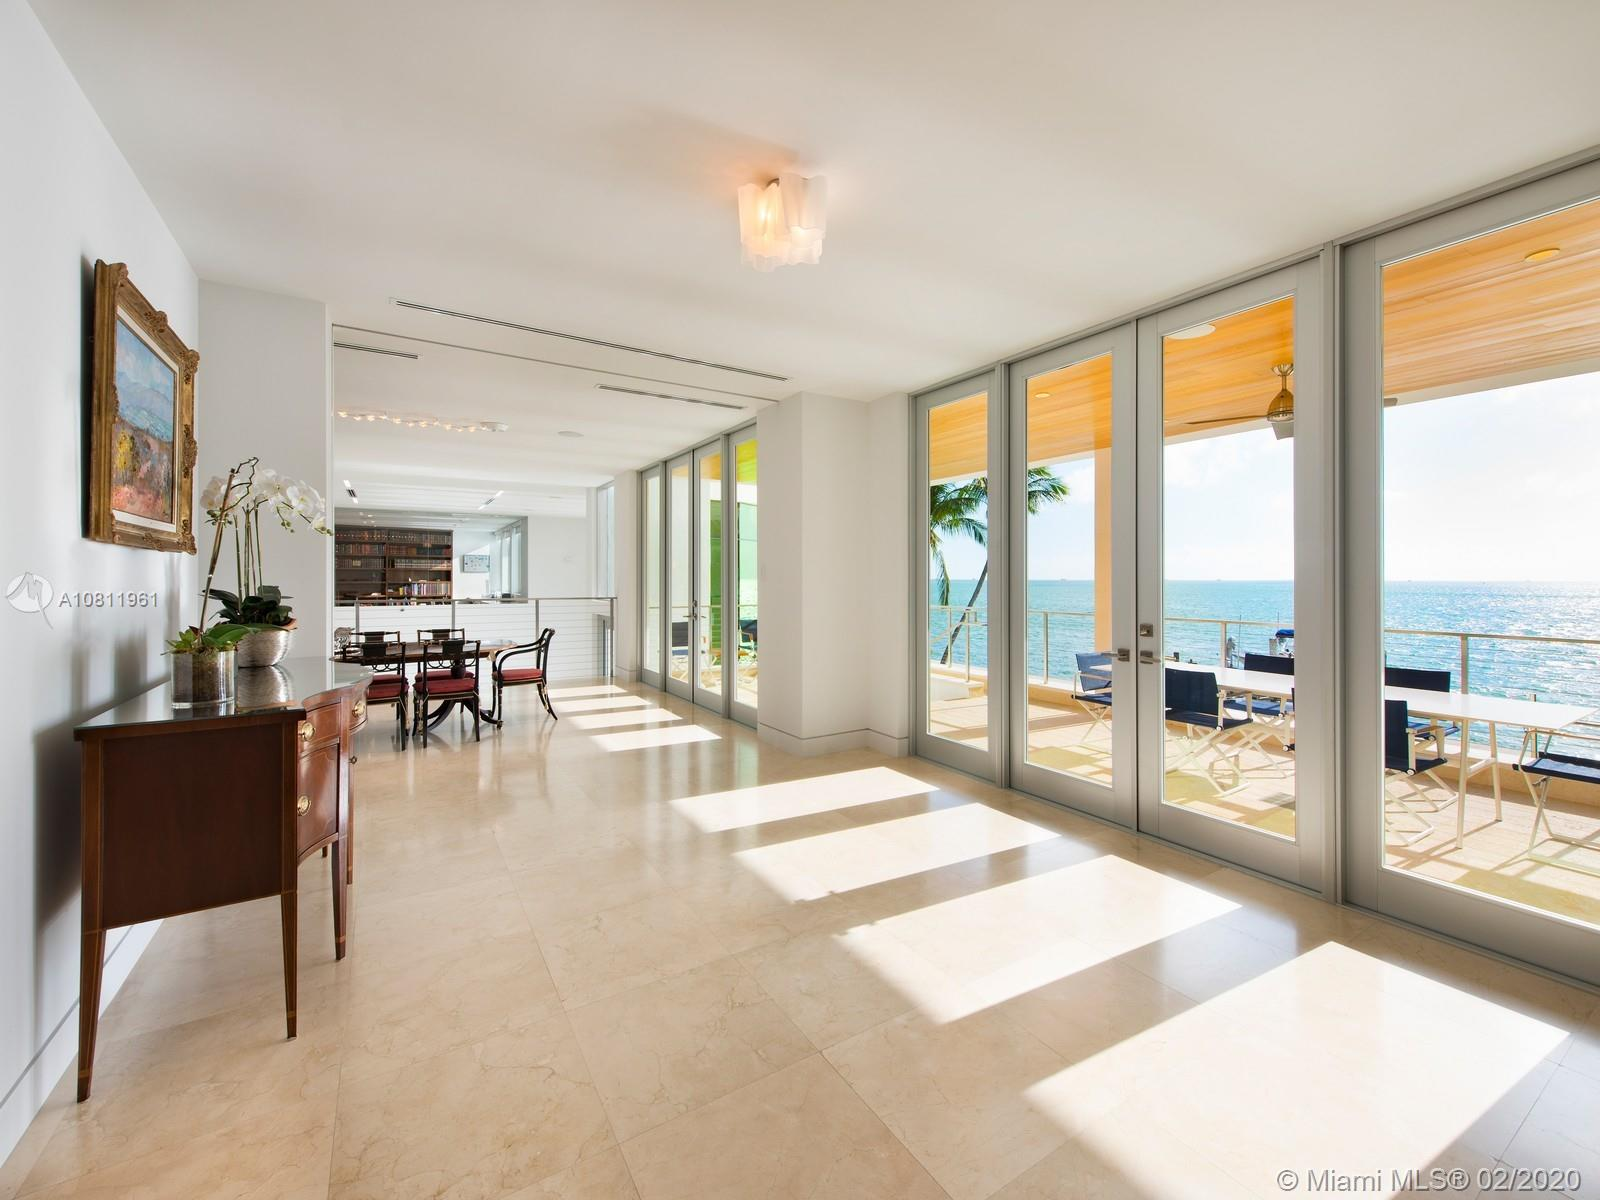 Ocean views from kitchen, breakfast area and dining room.